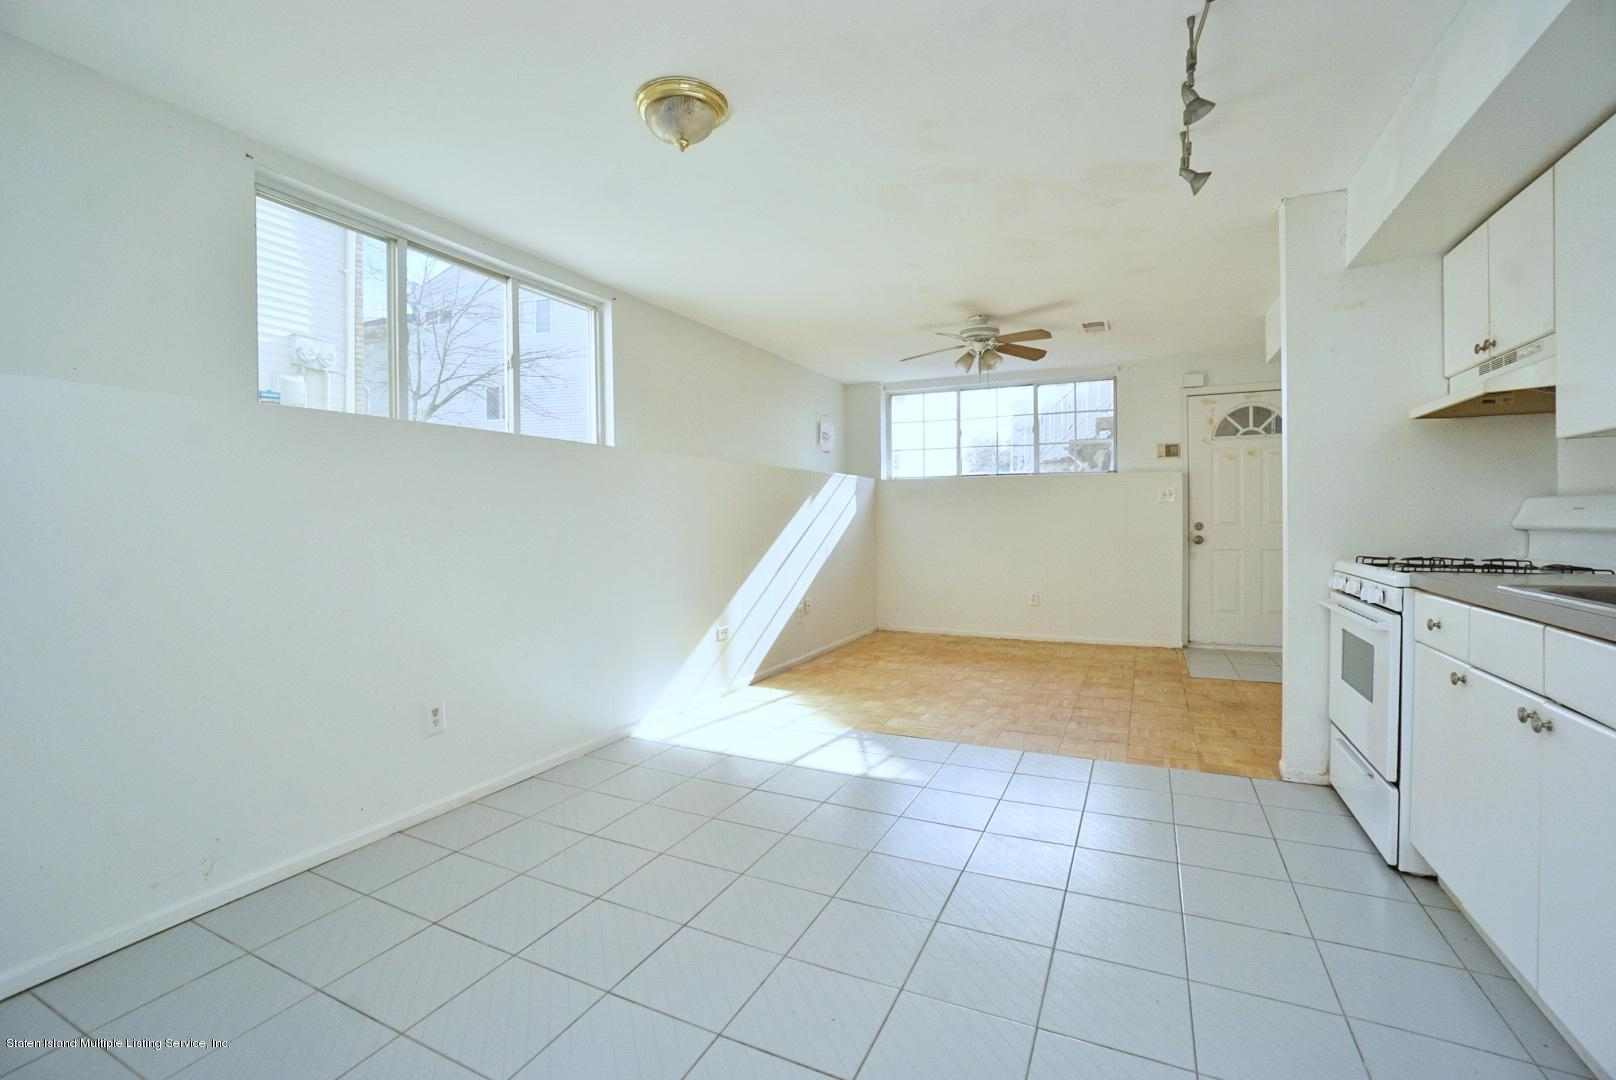 Two Family - Attached 71 Woodcutter Lane  Staten Island, NY 10306, MLS-1136417-30